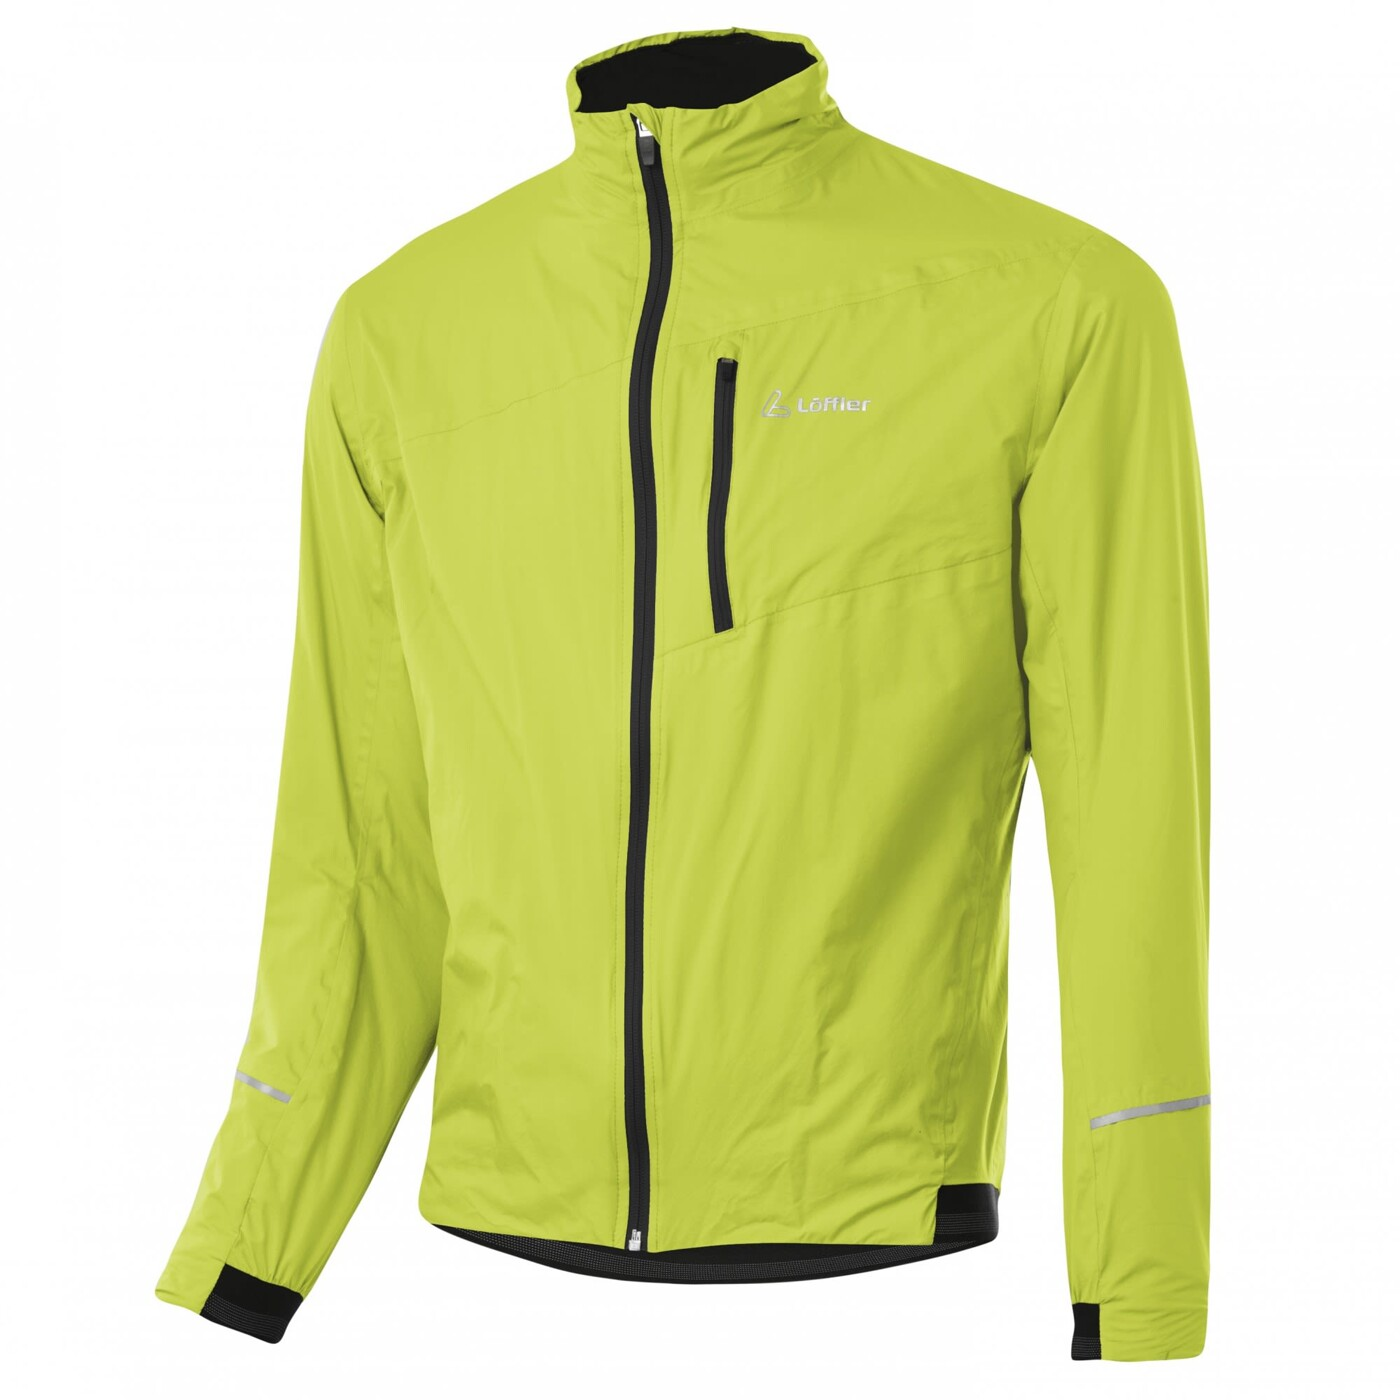 LÖFFLER M BIKE JACKET PL ACTIVE - Herren